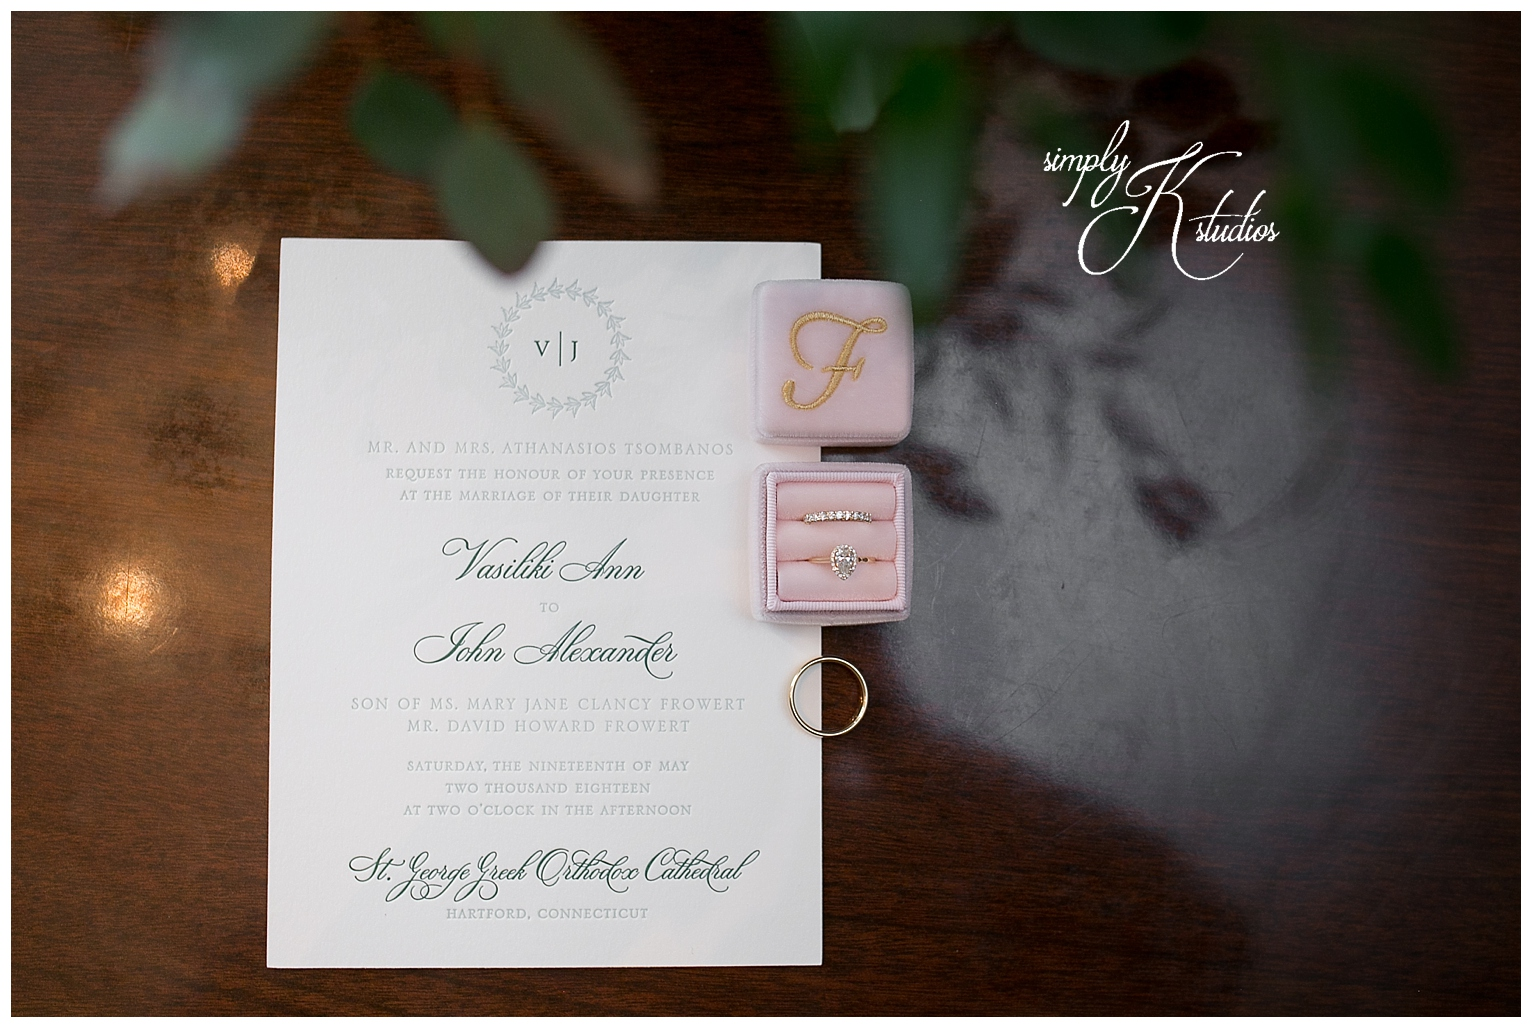 Wedding Invitations by Marissa Allie Designs.jpg